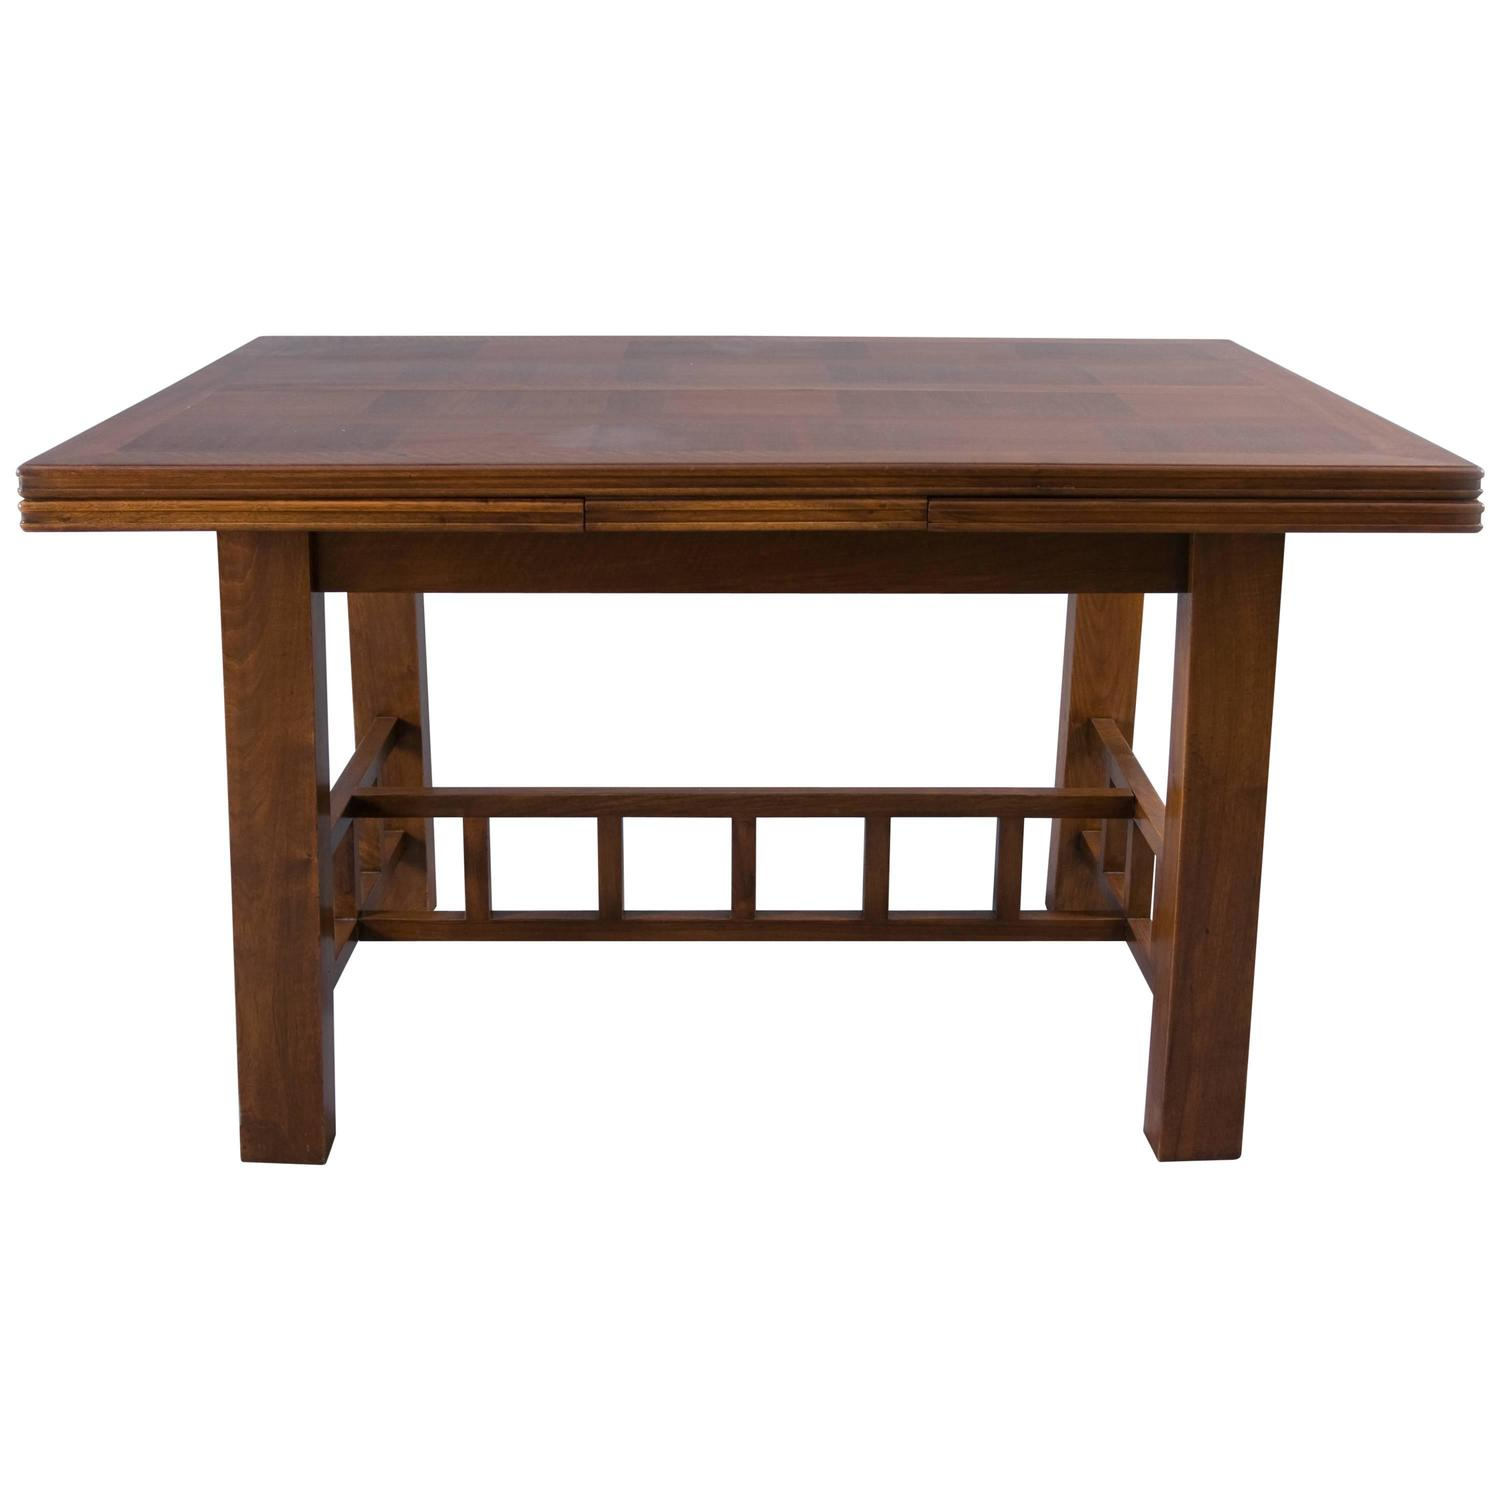 dining table with extension leaves attributed to francis